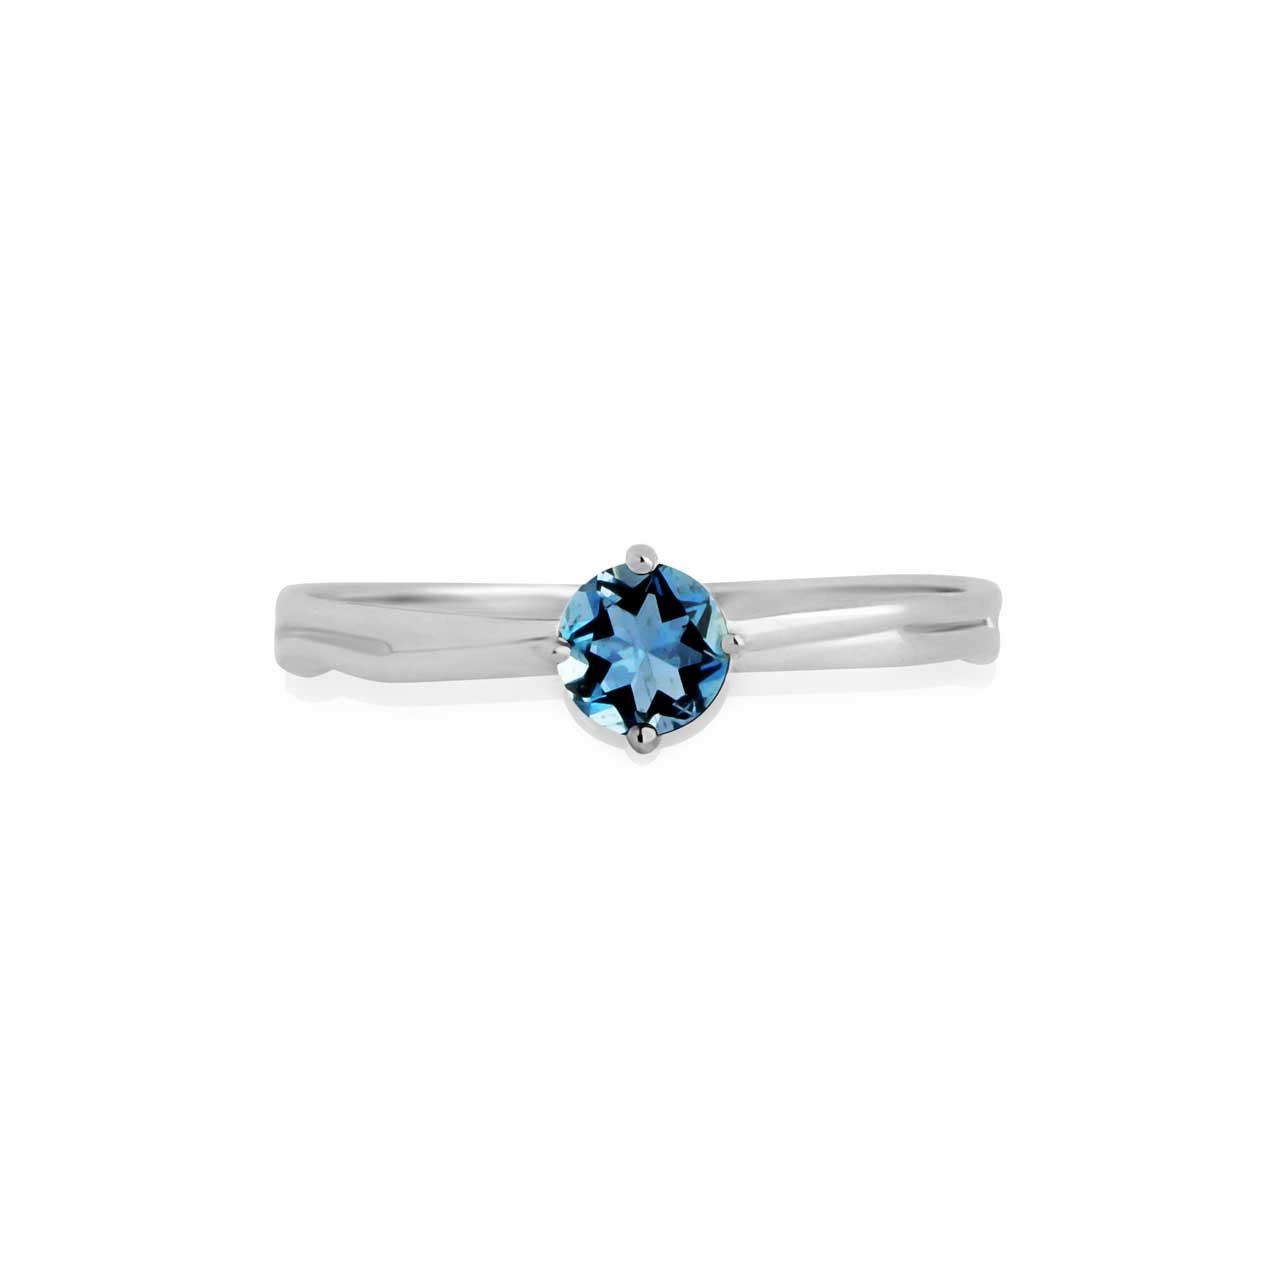 Aquamarine solitare ring 2